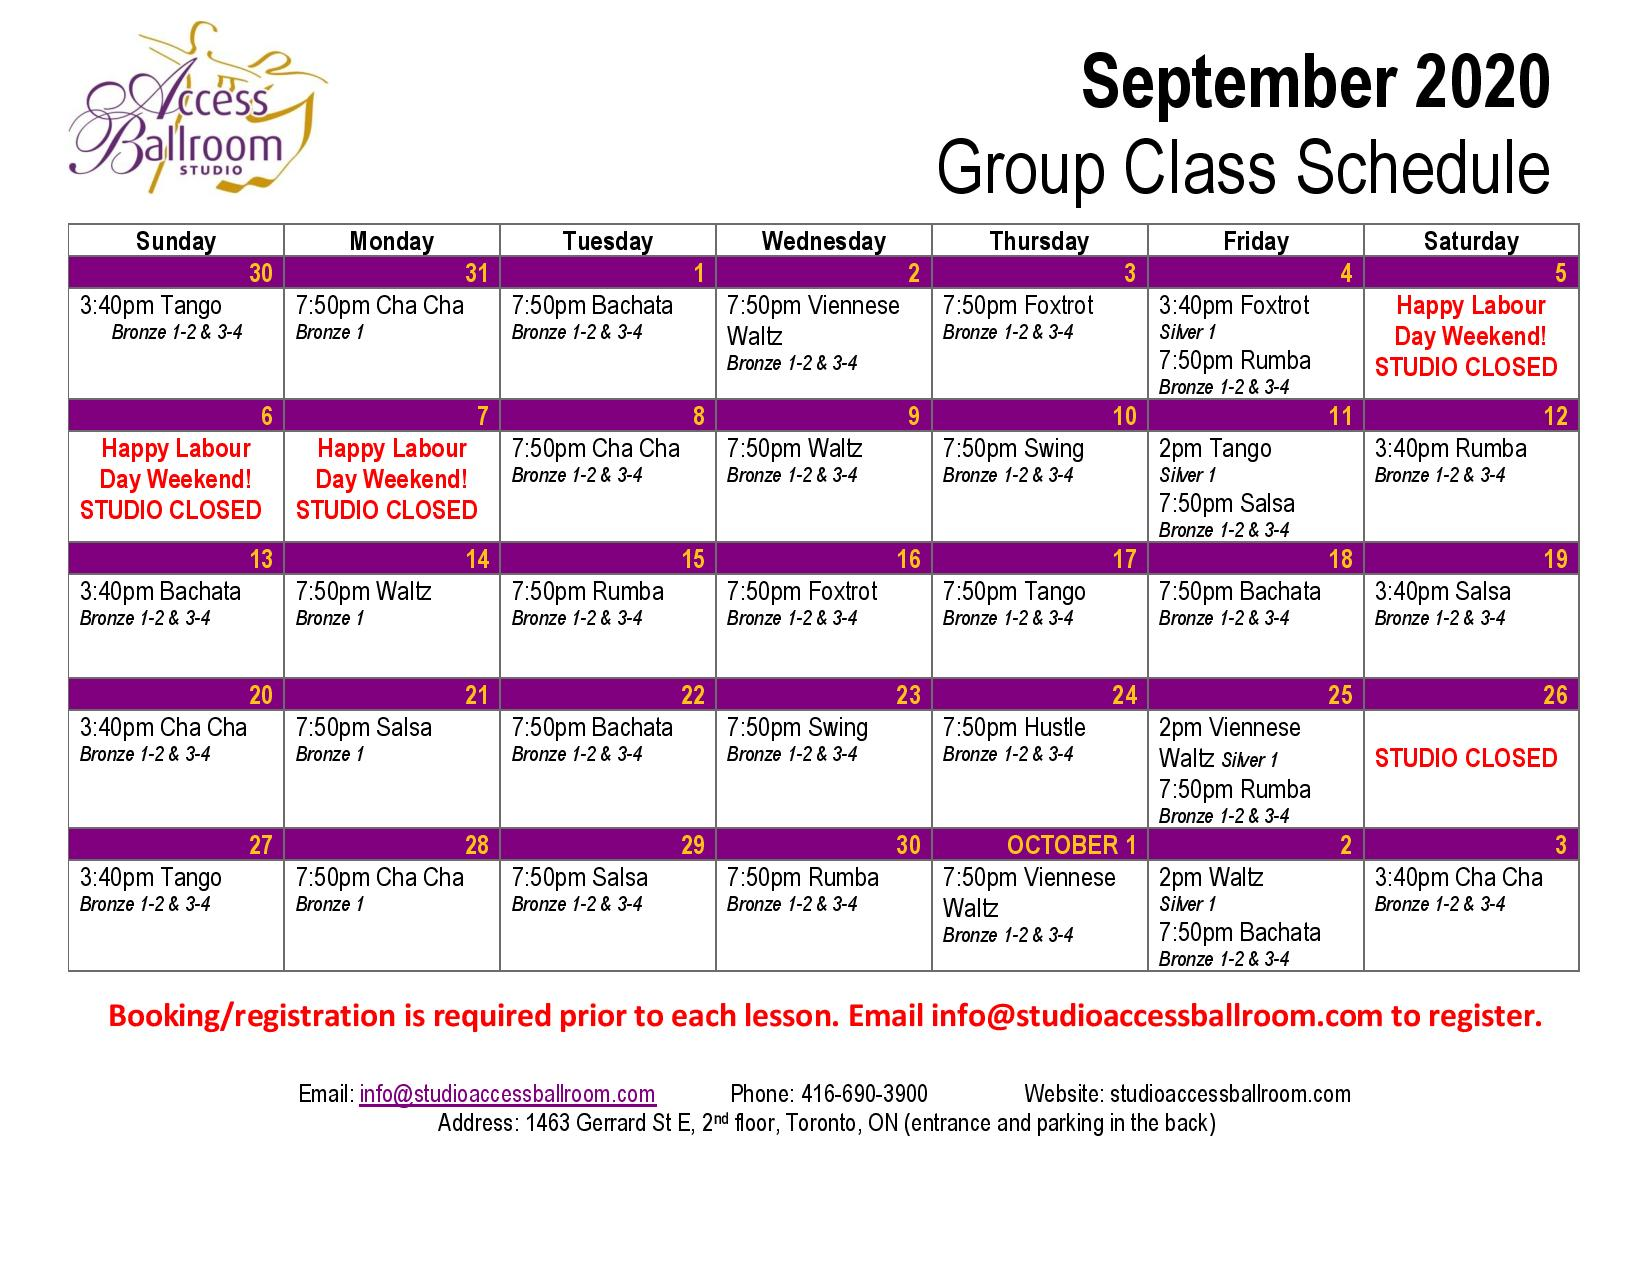 Access Ballroom september 2020 schedule